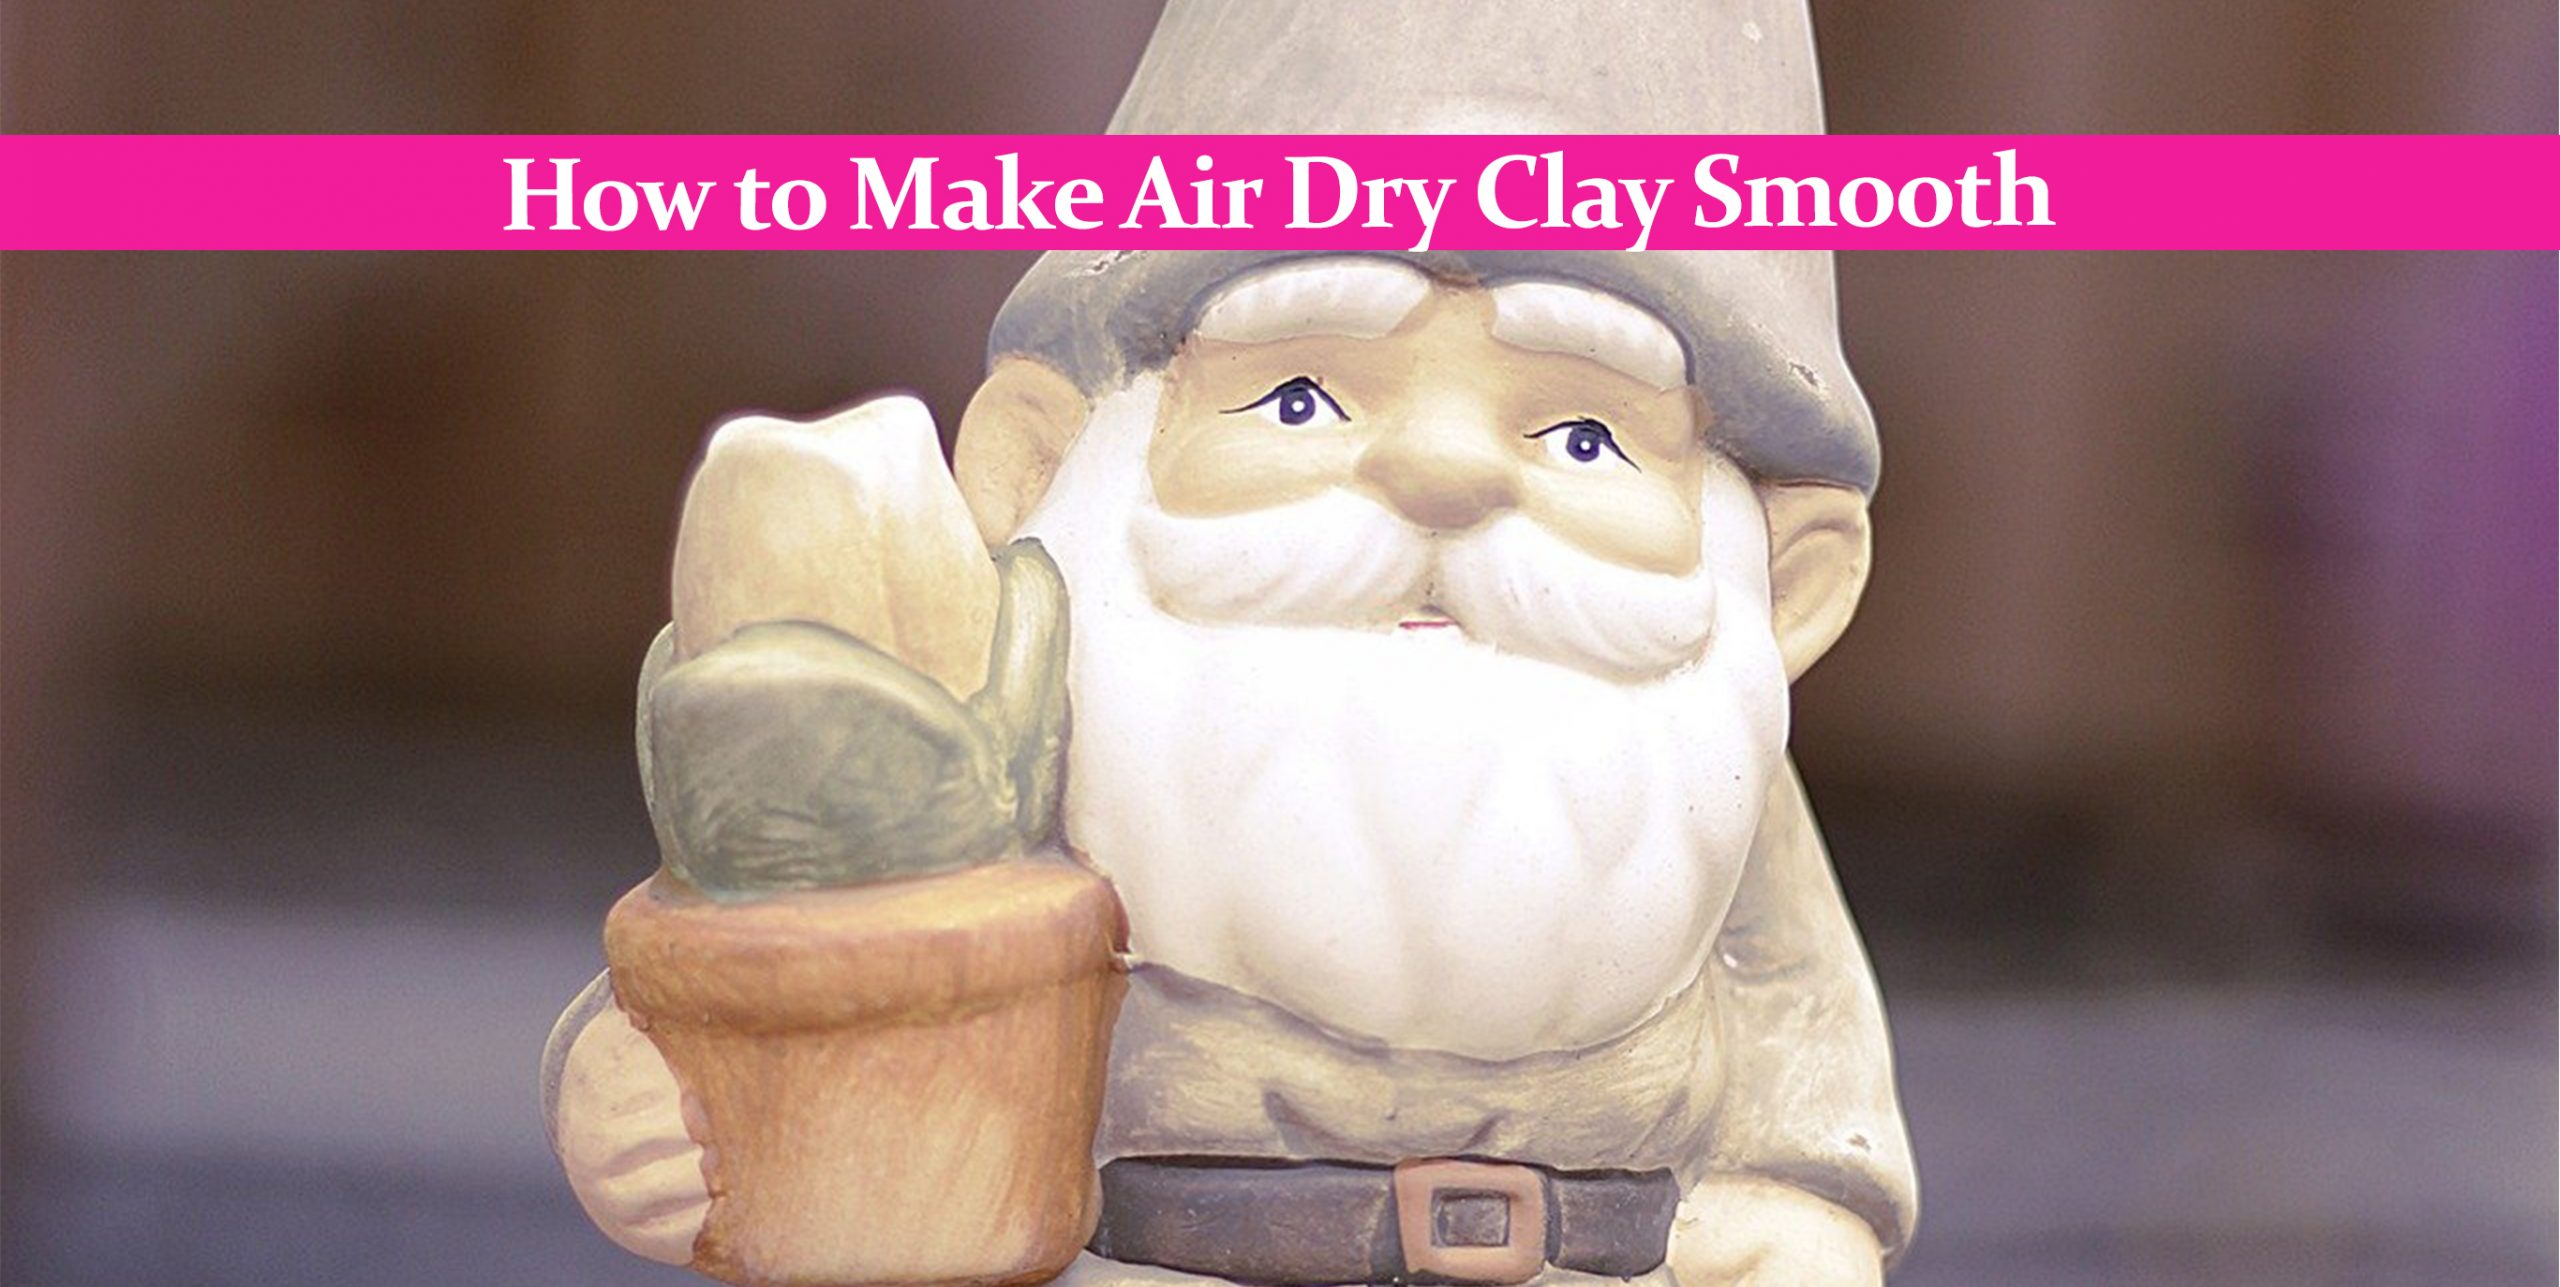 How to Make Air Dry Clay Smooth